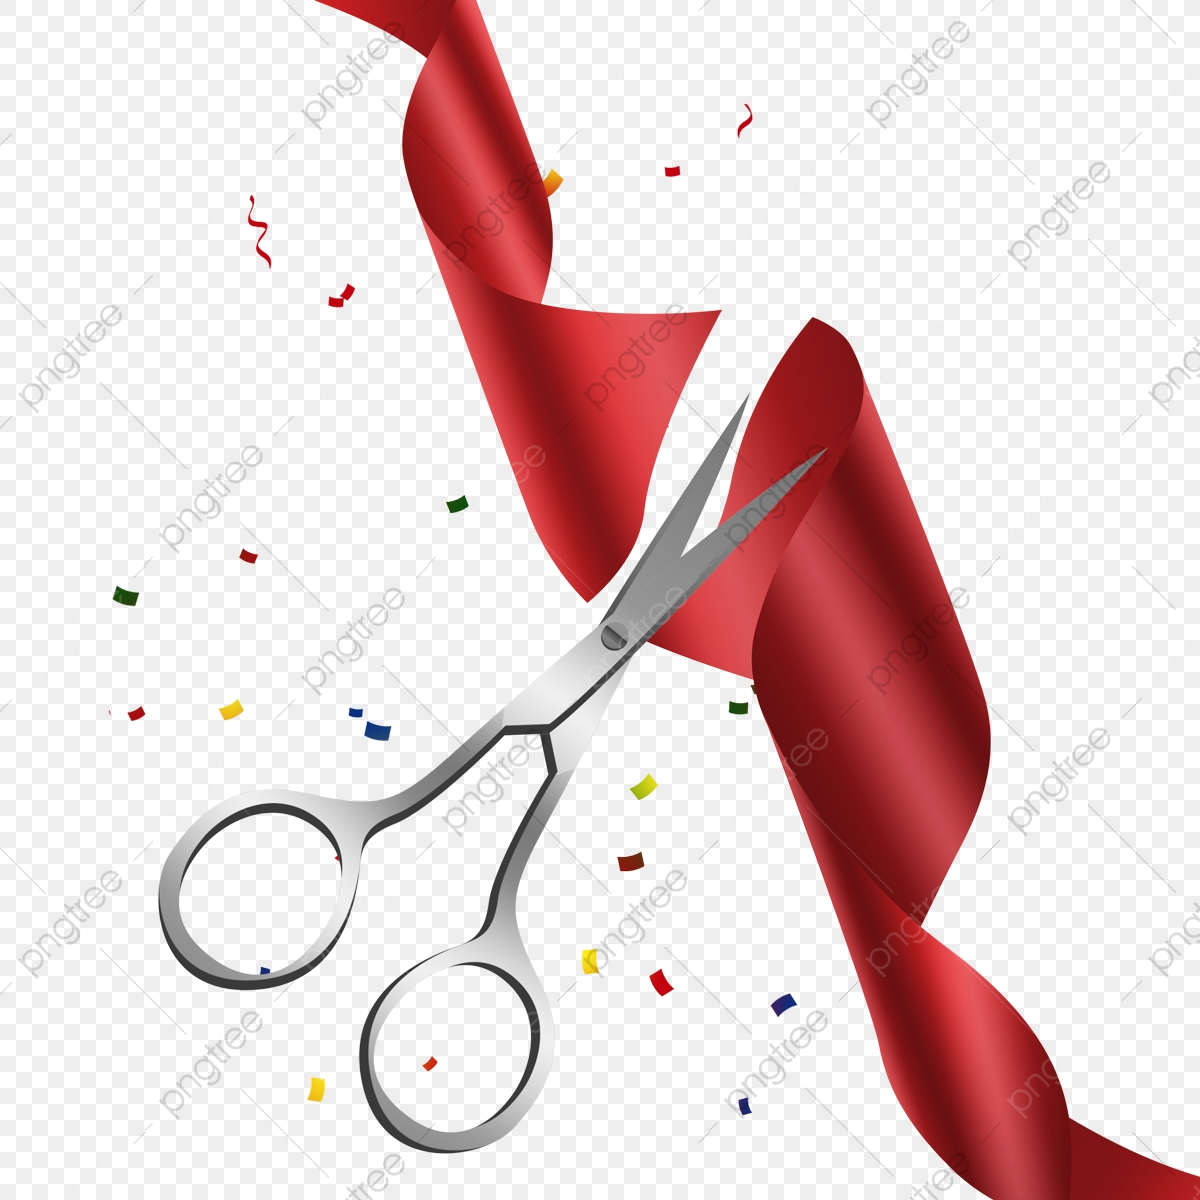 https pngtree com freepng opening ribbon cutting ceremony 5436896 html